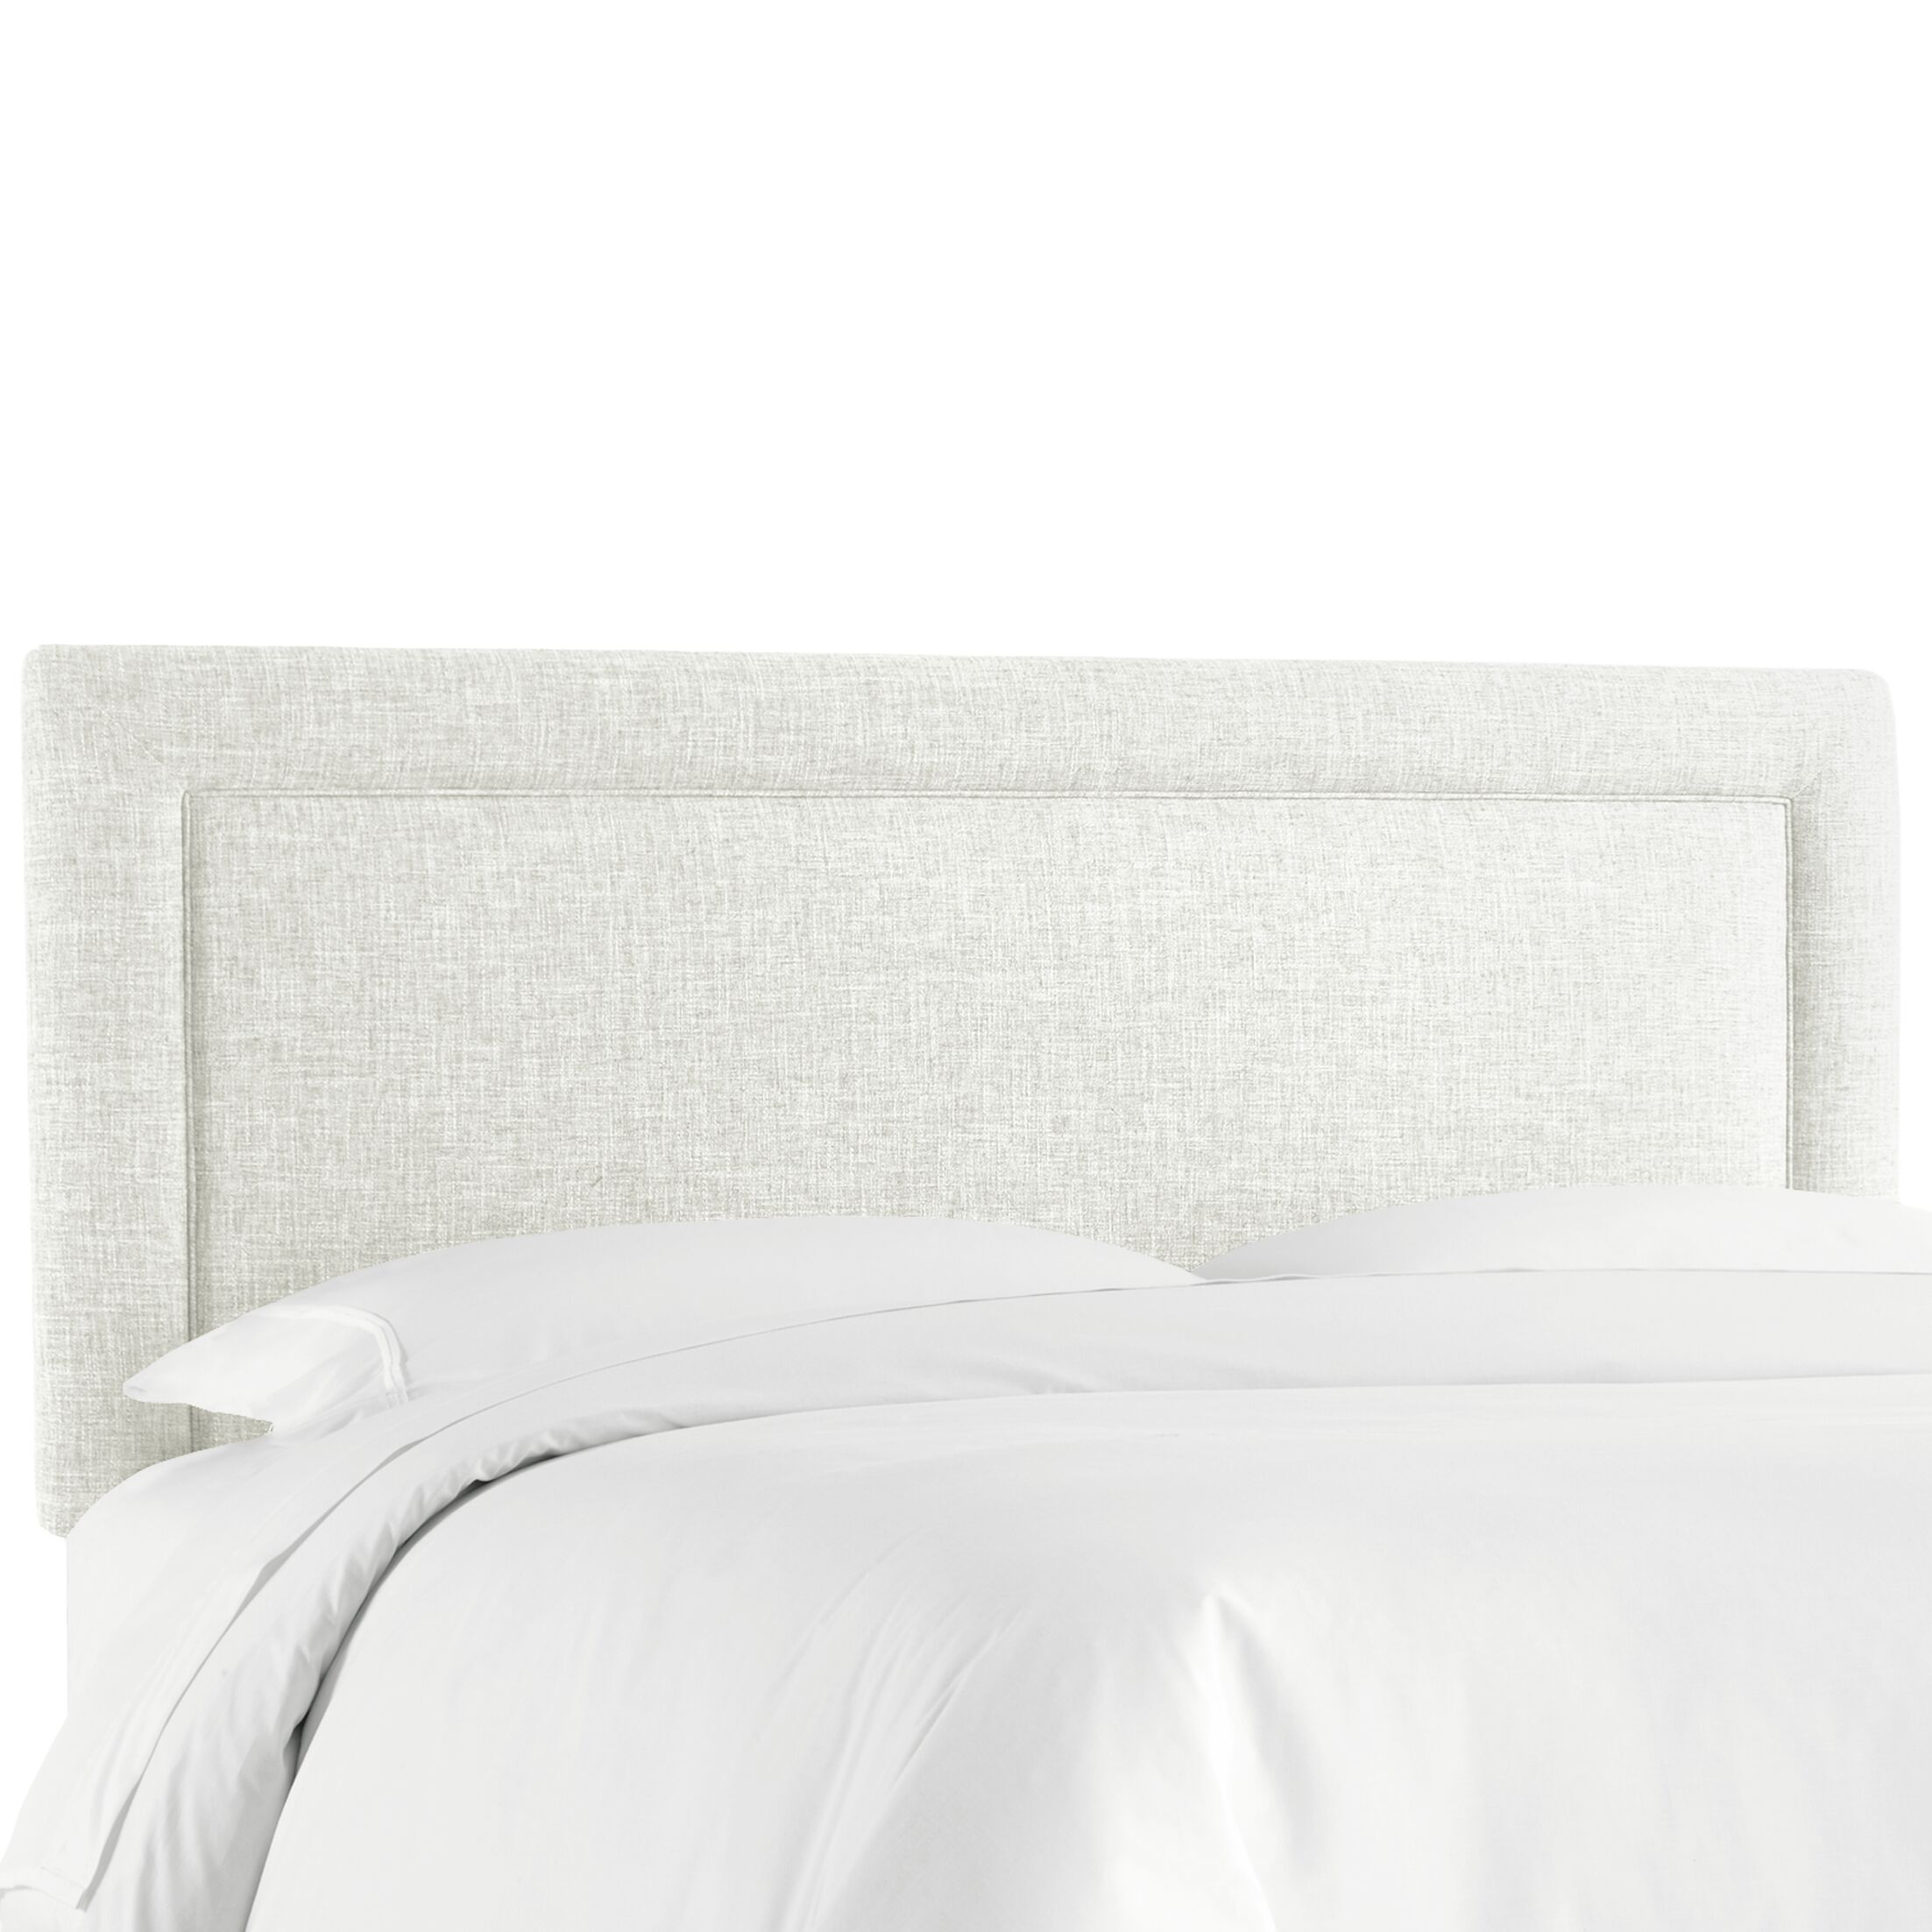 Cansler Border Upholstered Panel Headboard Size: Twin, Upholstery: Off-White